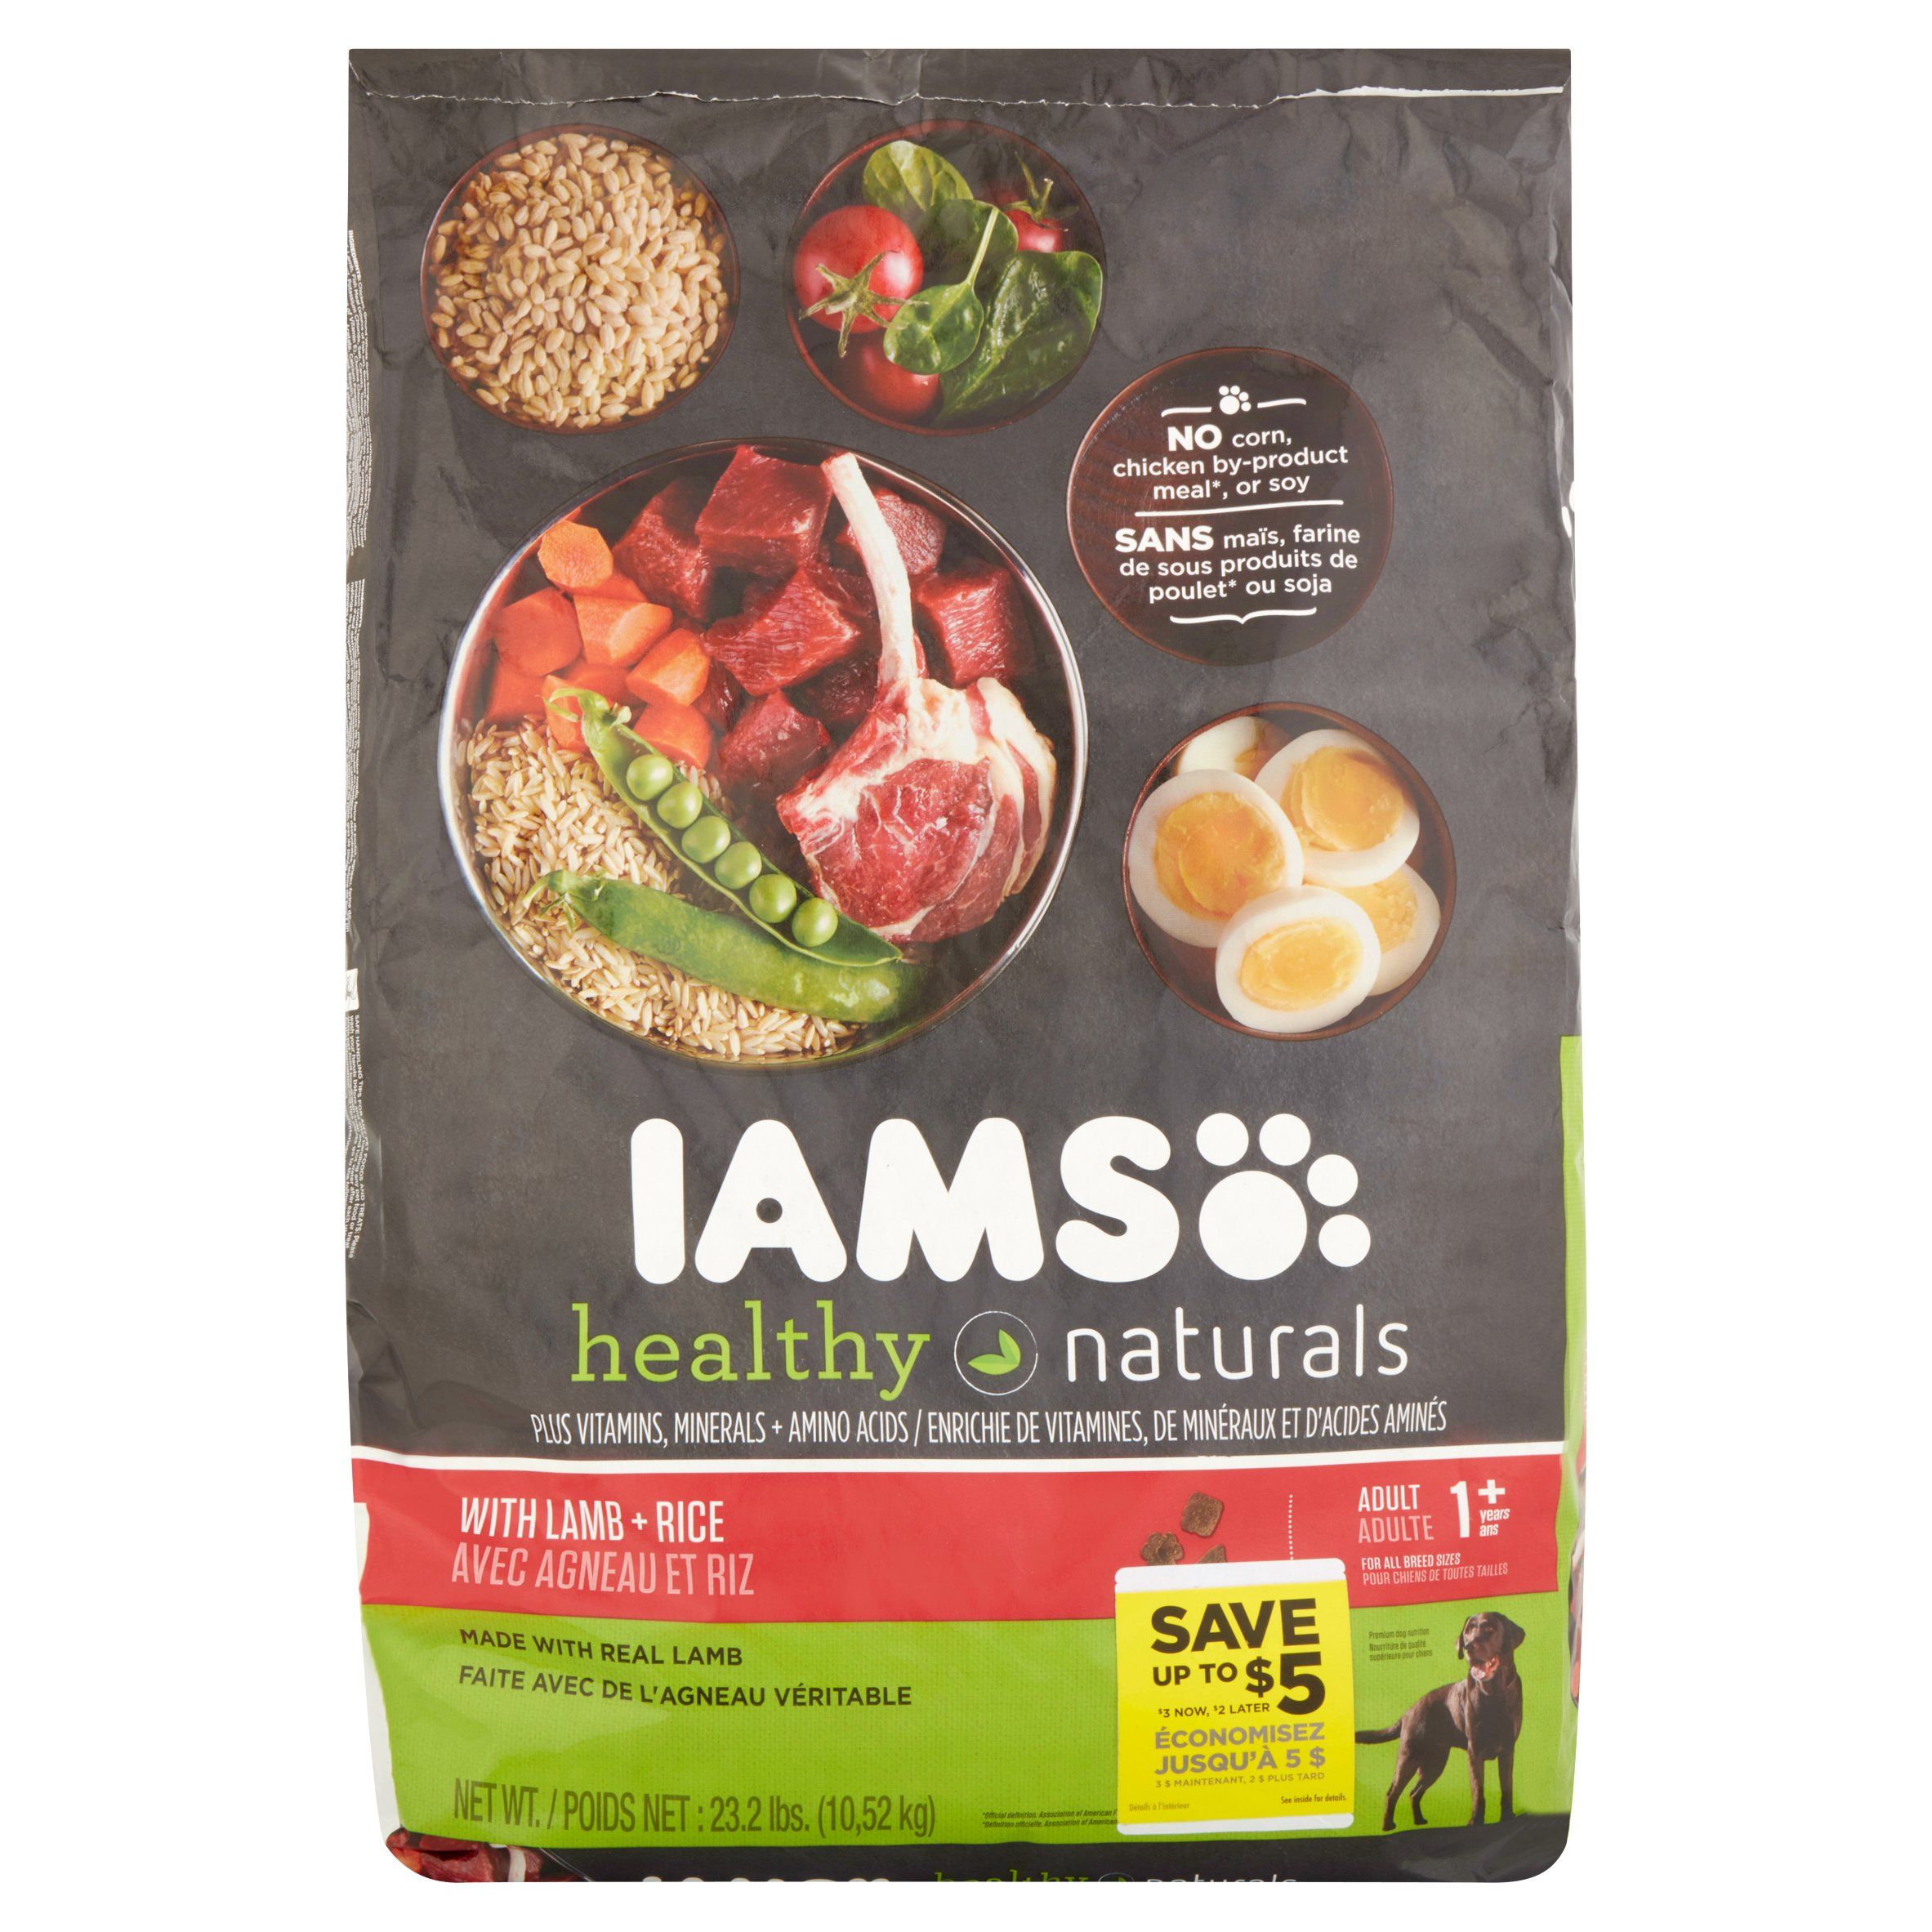 Iams Healthy Naturals With Lamb + Rice Premium Dog Nutrition Adult 1+ Years, 23.2 Lbs